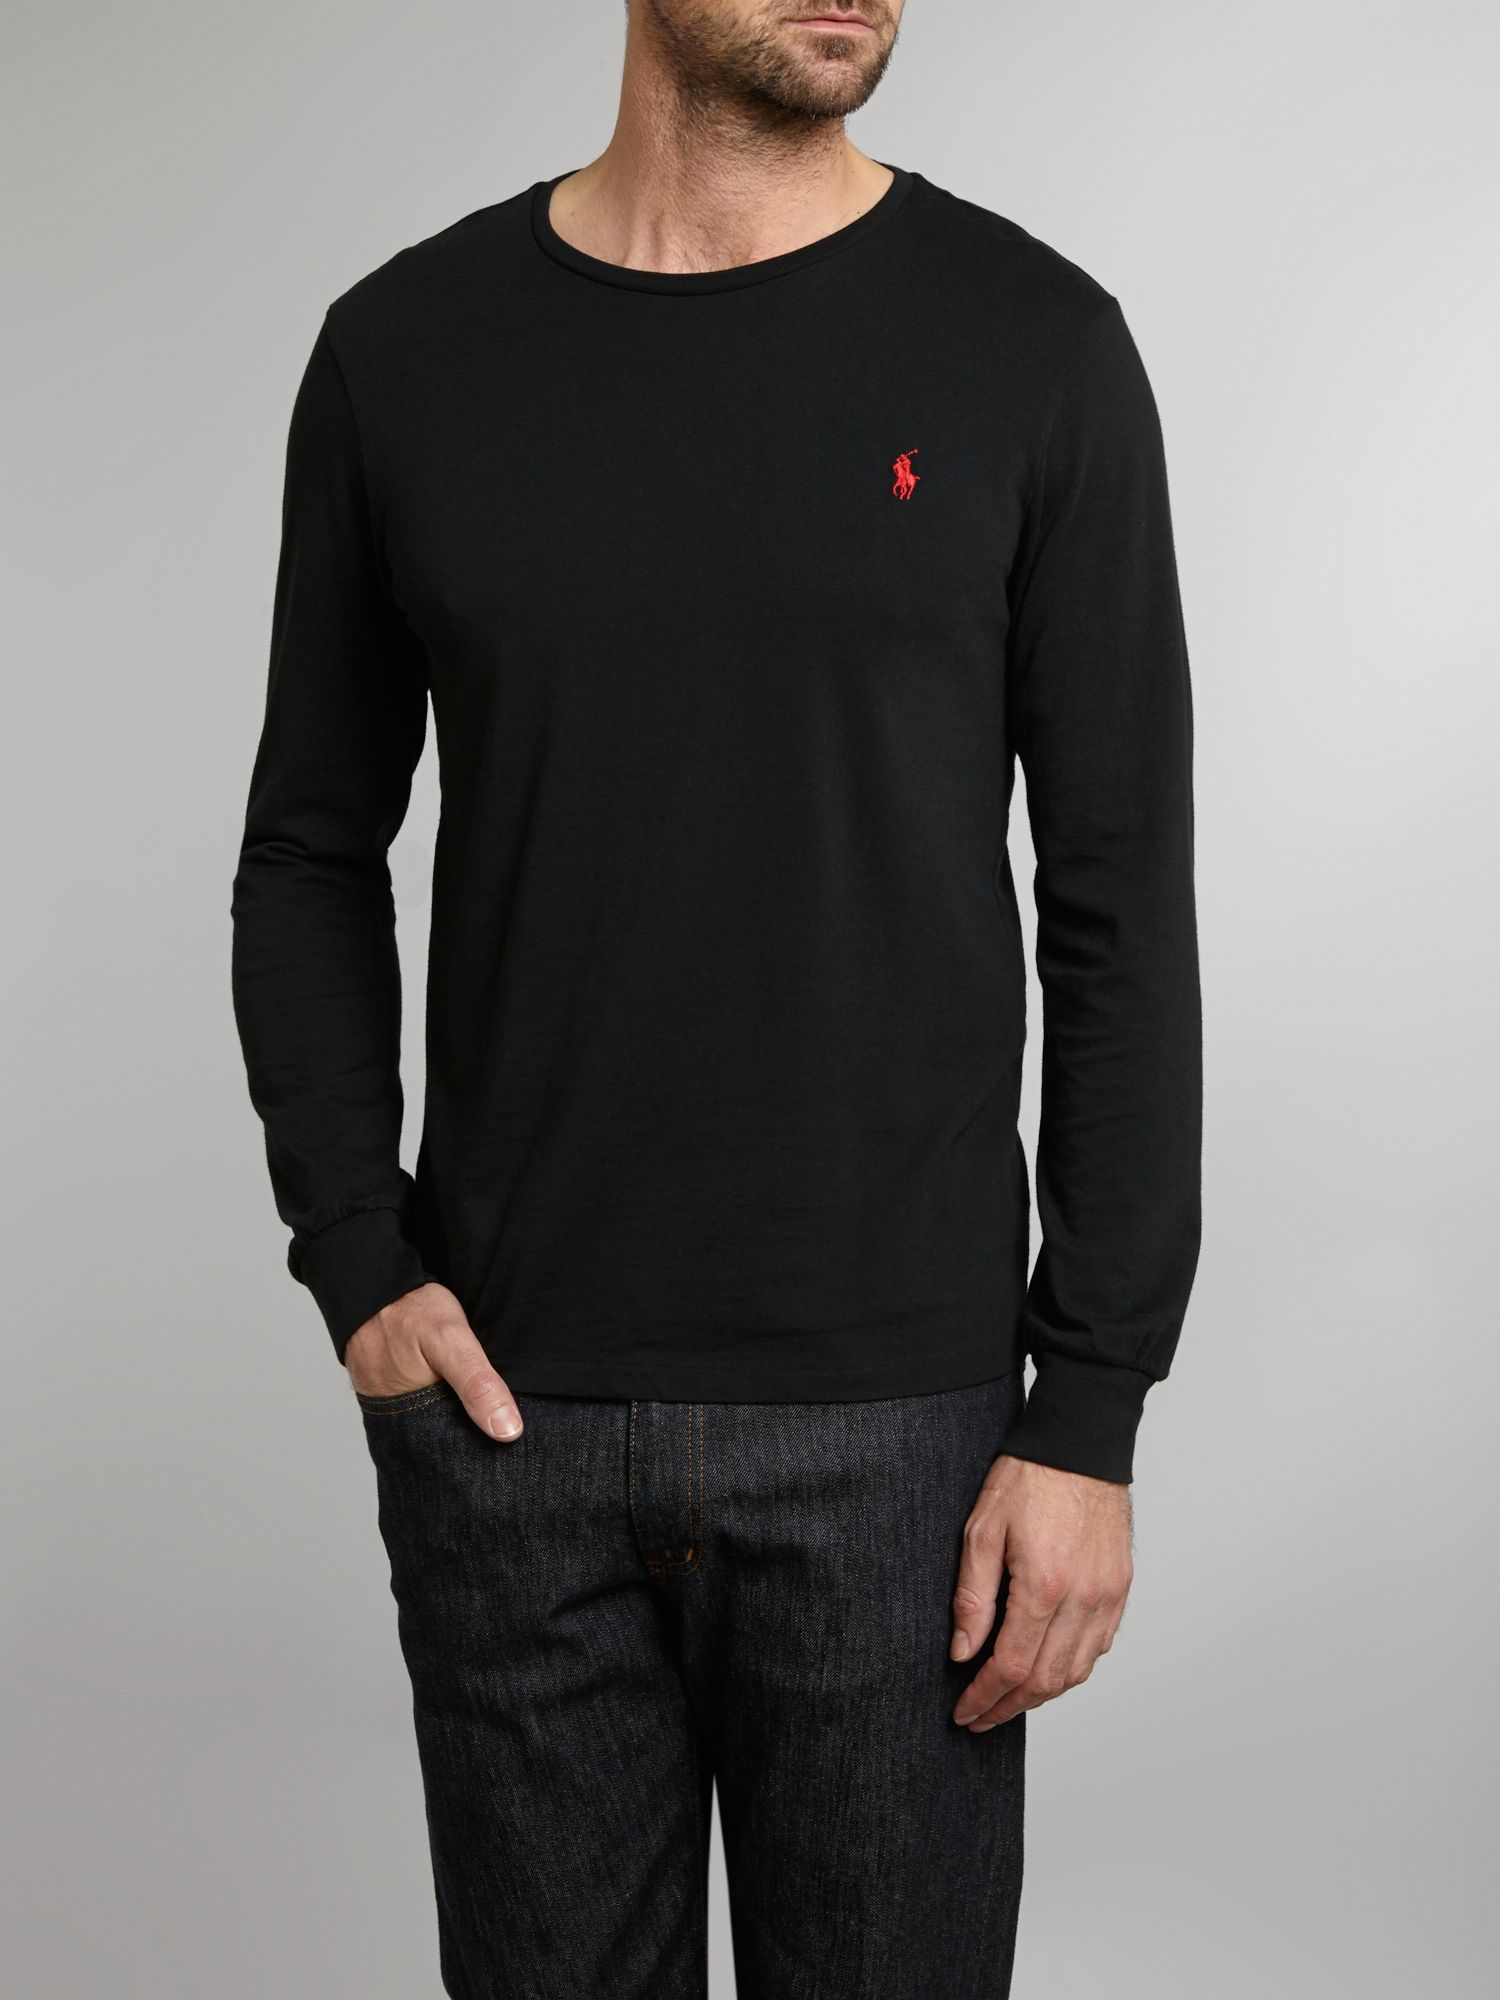 polo ralph lauren long sleeve custom fit crew neck tshirt in black for men lyst. Black Bedroom Furniture Sets. Home Design Ideas